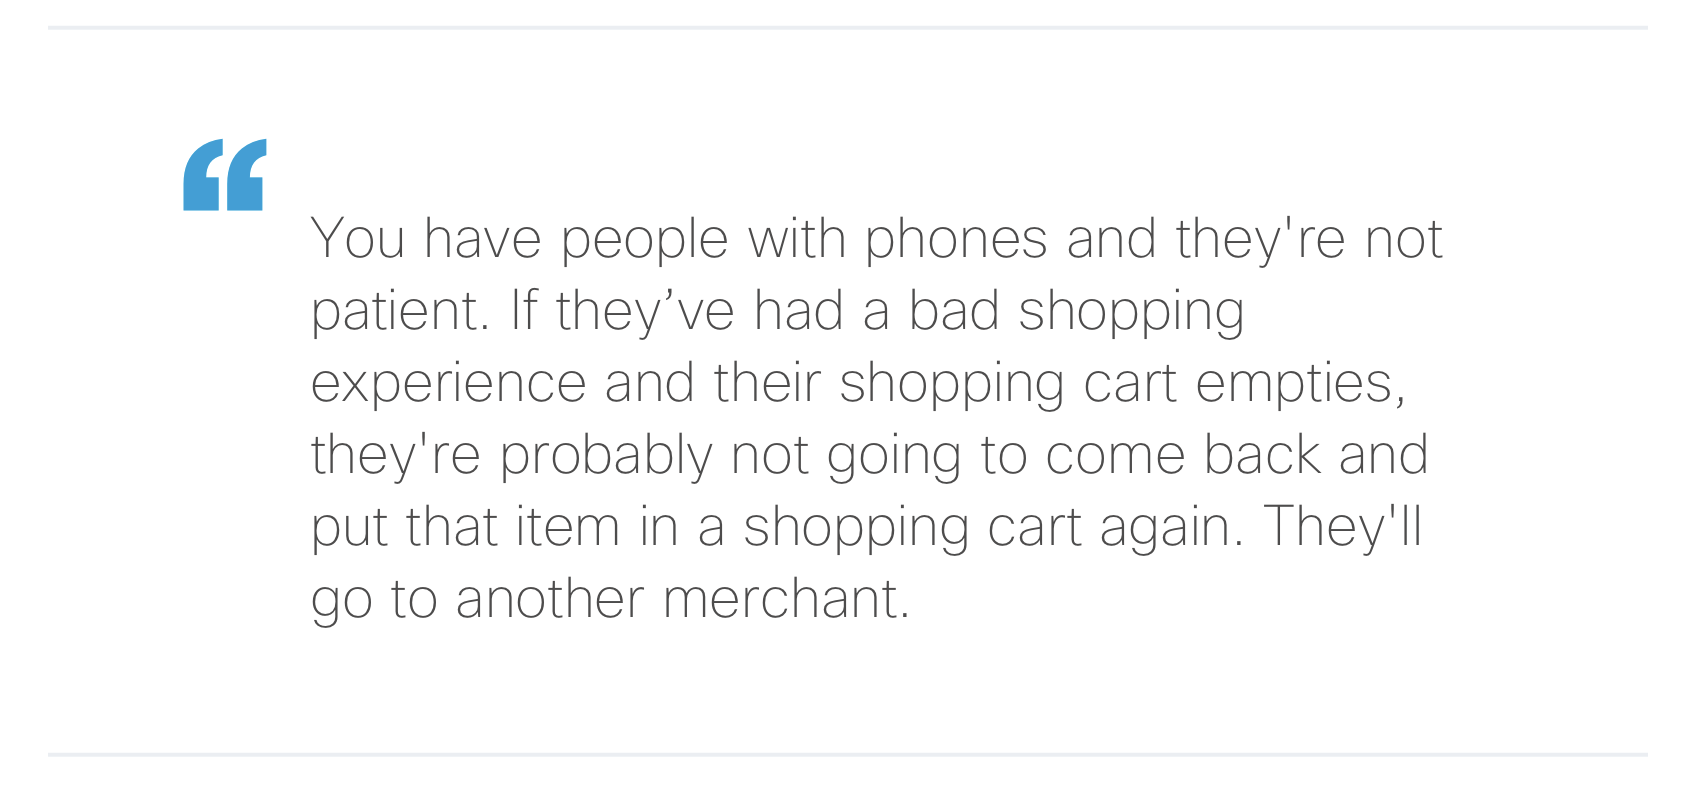 """""""You have people with phones and they're not patient. If they've had a bad shopping experience and their shopping cart empties, they're probably not going to come back and put that item in a shopping cart again. They'll go to another merchant."""""""